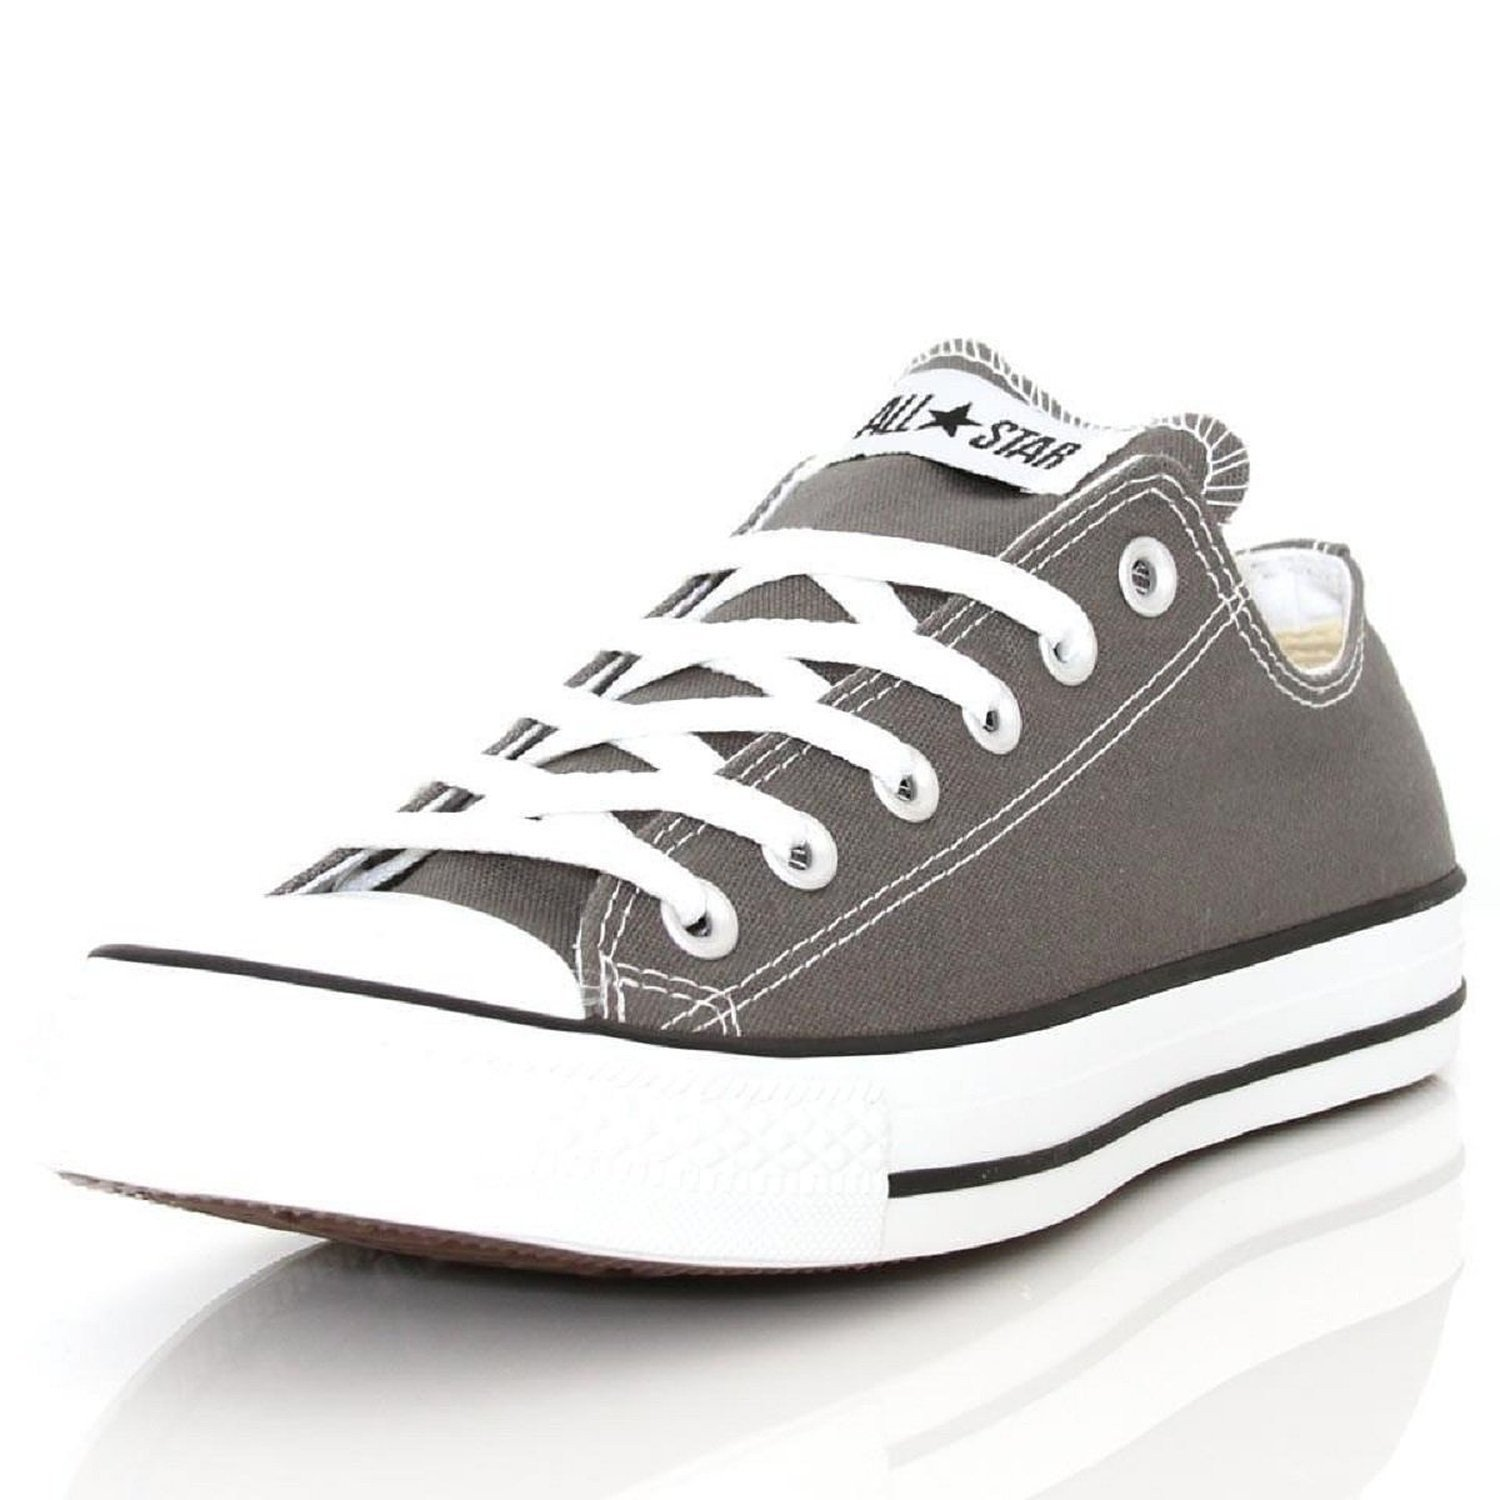 Converse Unisex-Erwachsene CTAS Seasonal-OX-White Monochrome Sneaker  6 B(M) US Women / 4 D(M) US Men|Charcoal